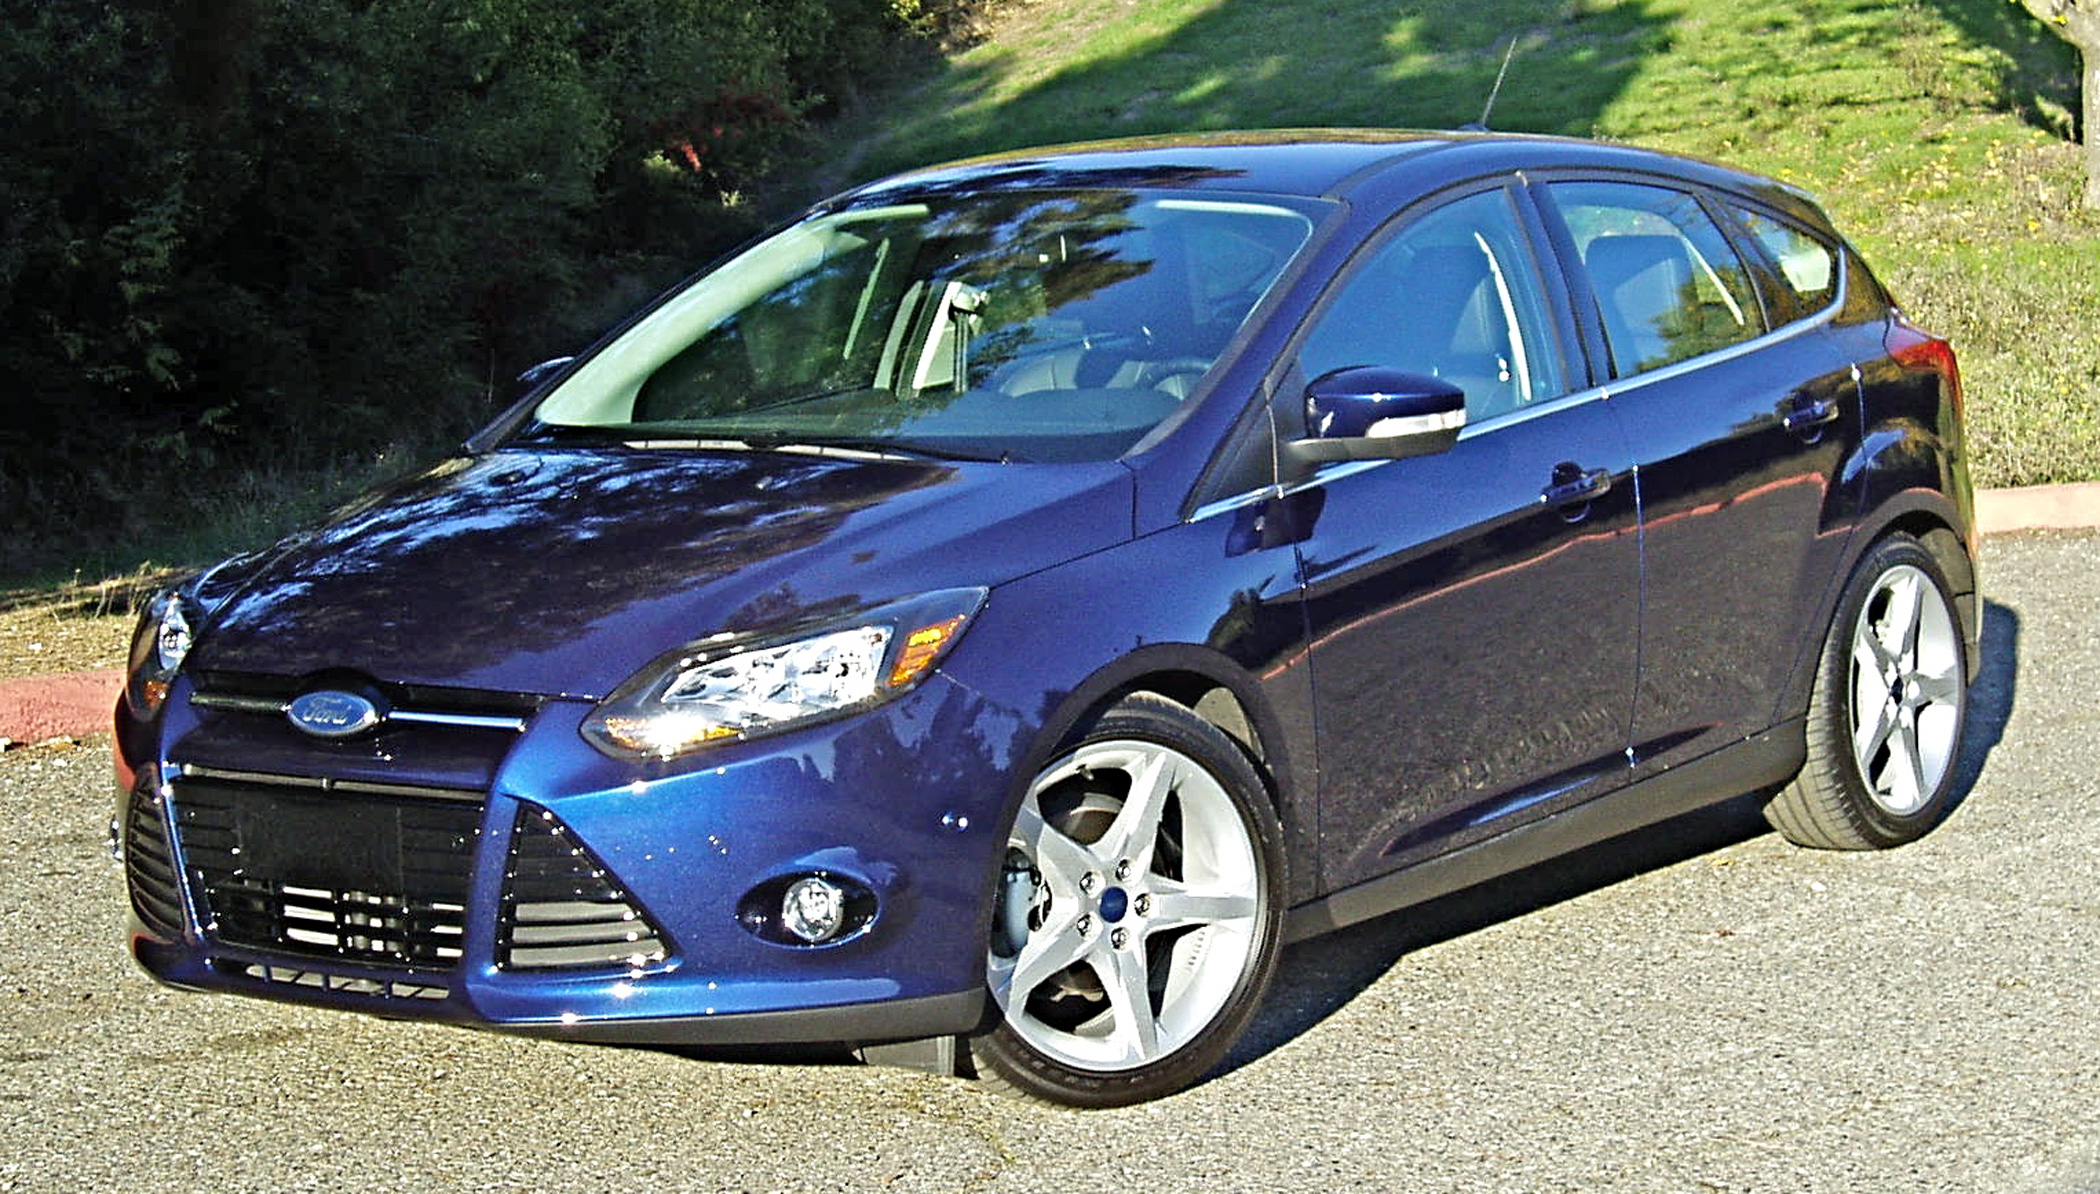 2012 Ford Focus Reviews and Rating | Motortrend